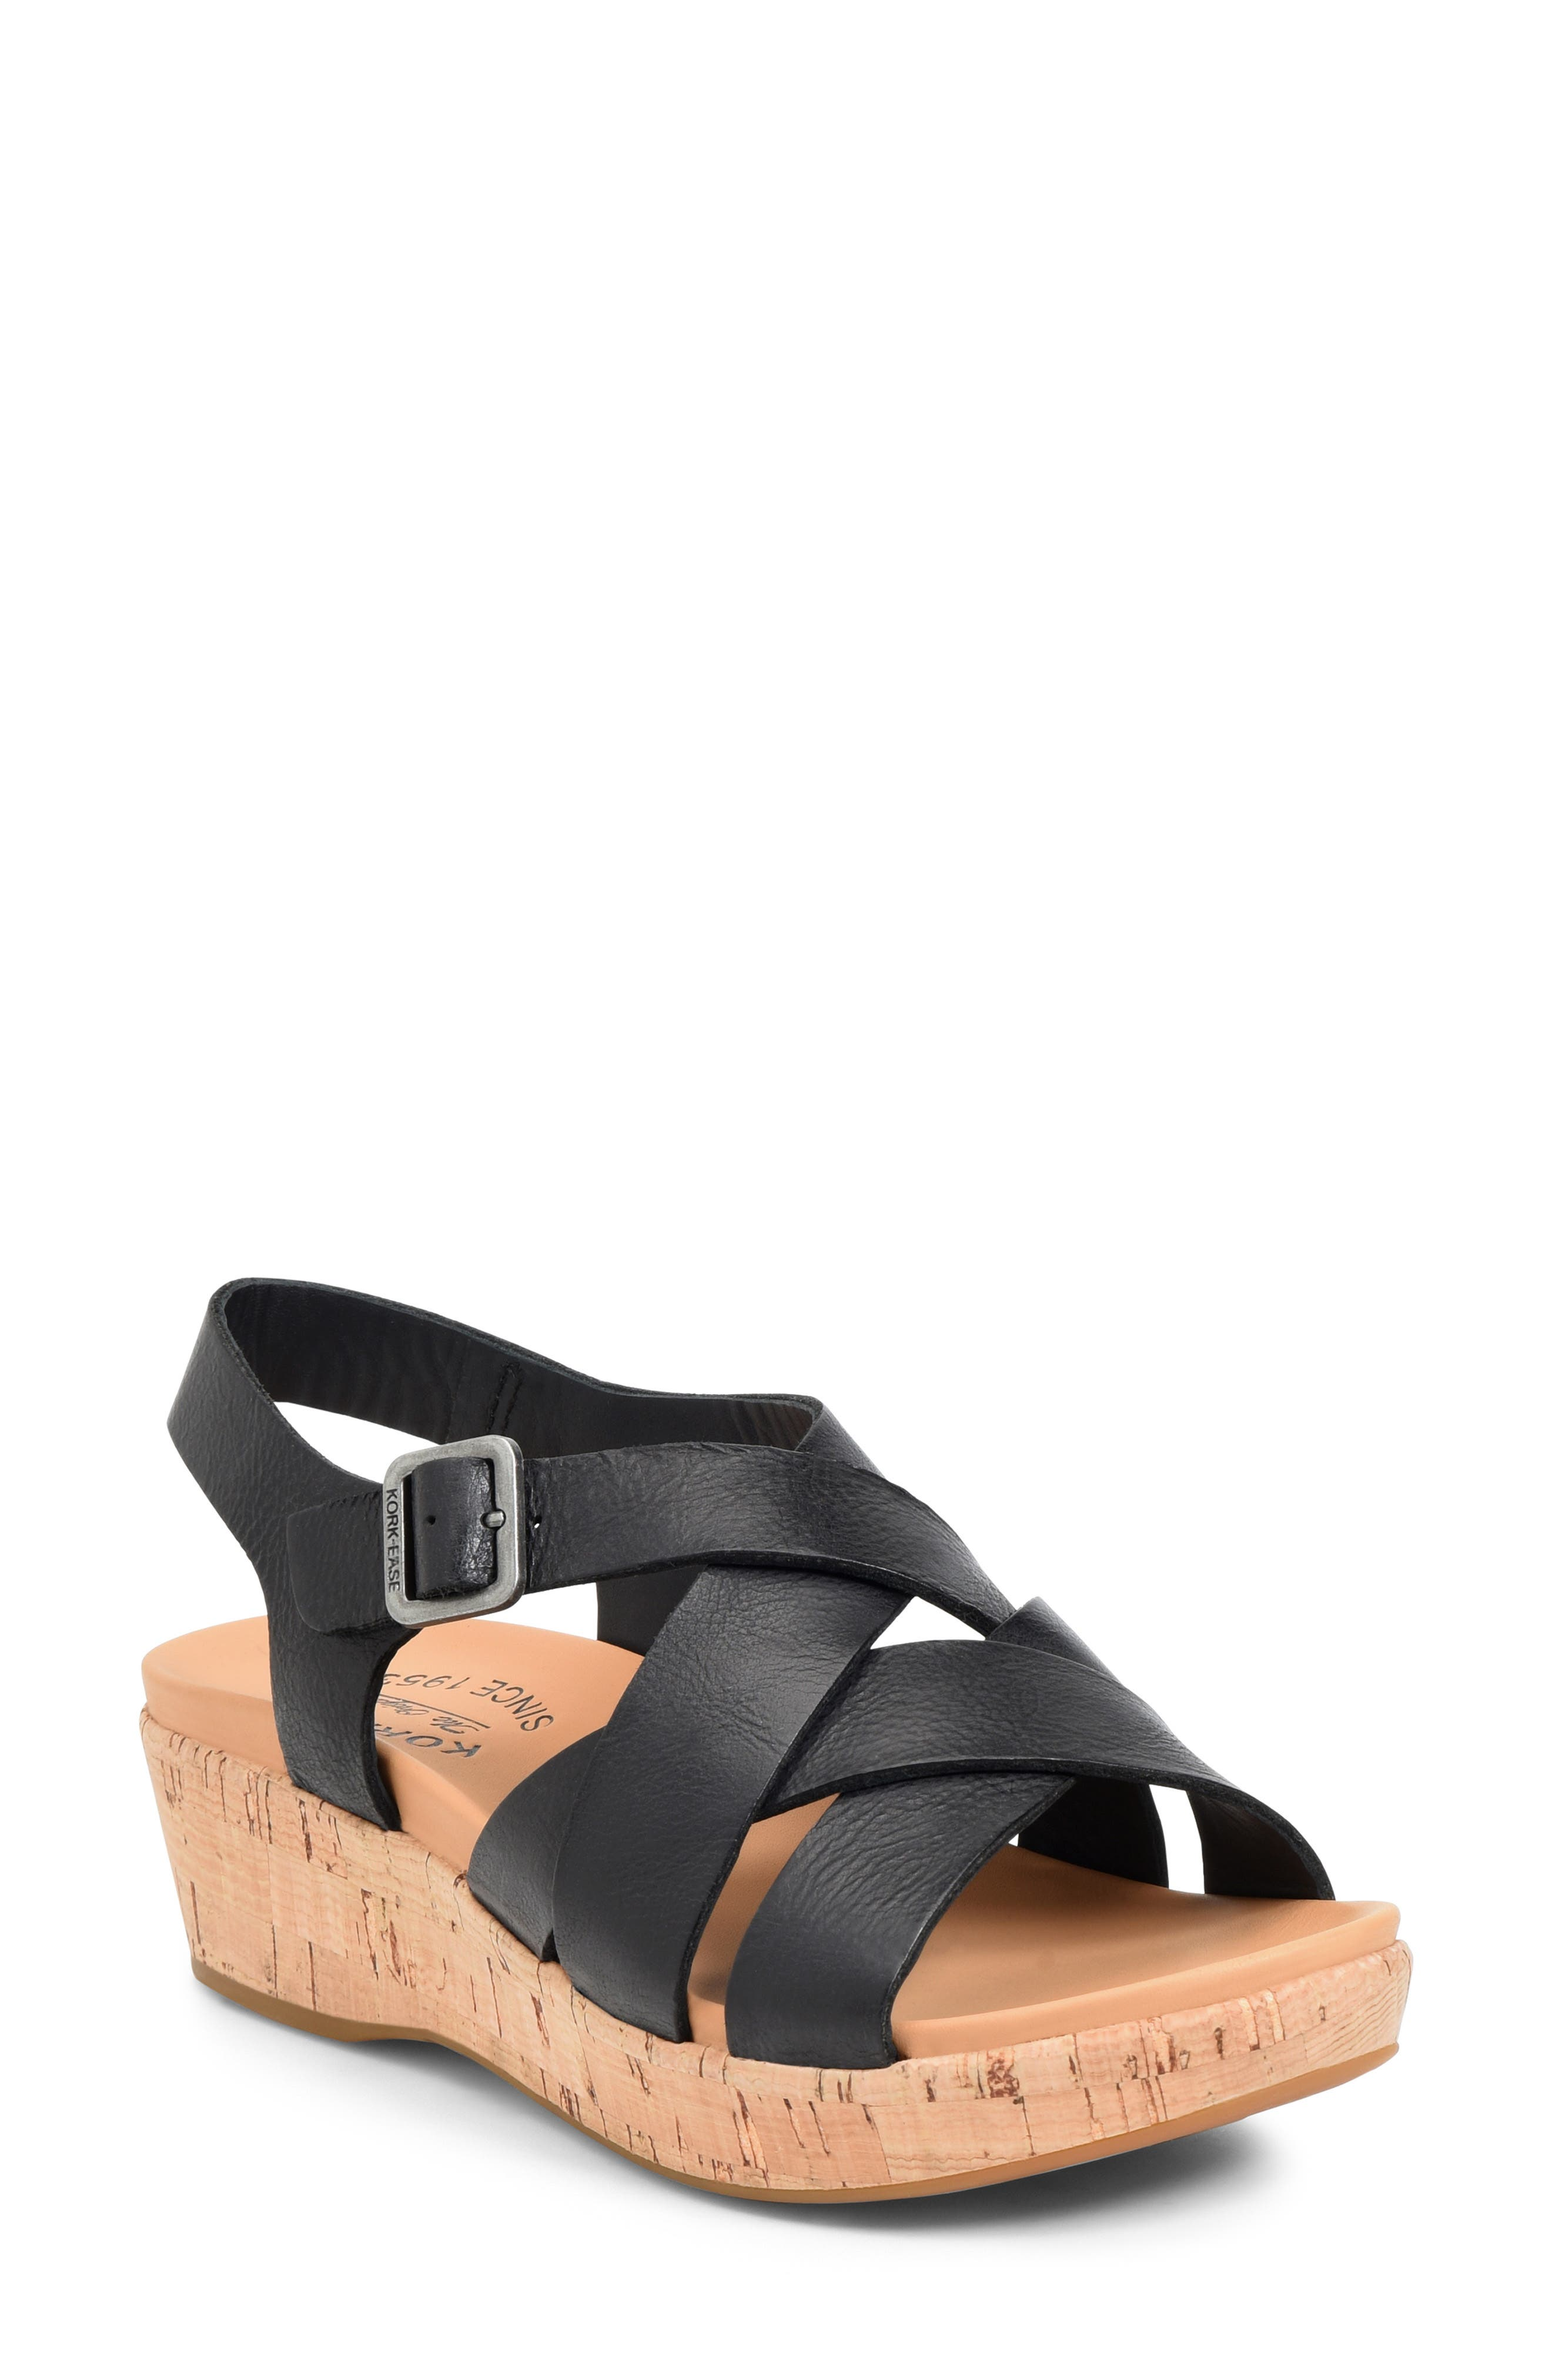 Interwoven straps and a cork-textured sole add contemporary-cool appeal to this well-cushioned sandal. Style Name: Kork-Ease Caroleigh Wedge Sandal (Women). Style Number: 6032798. Available in stores.